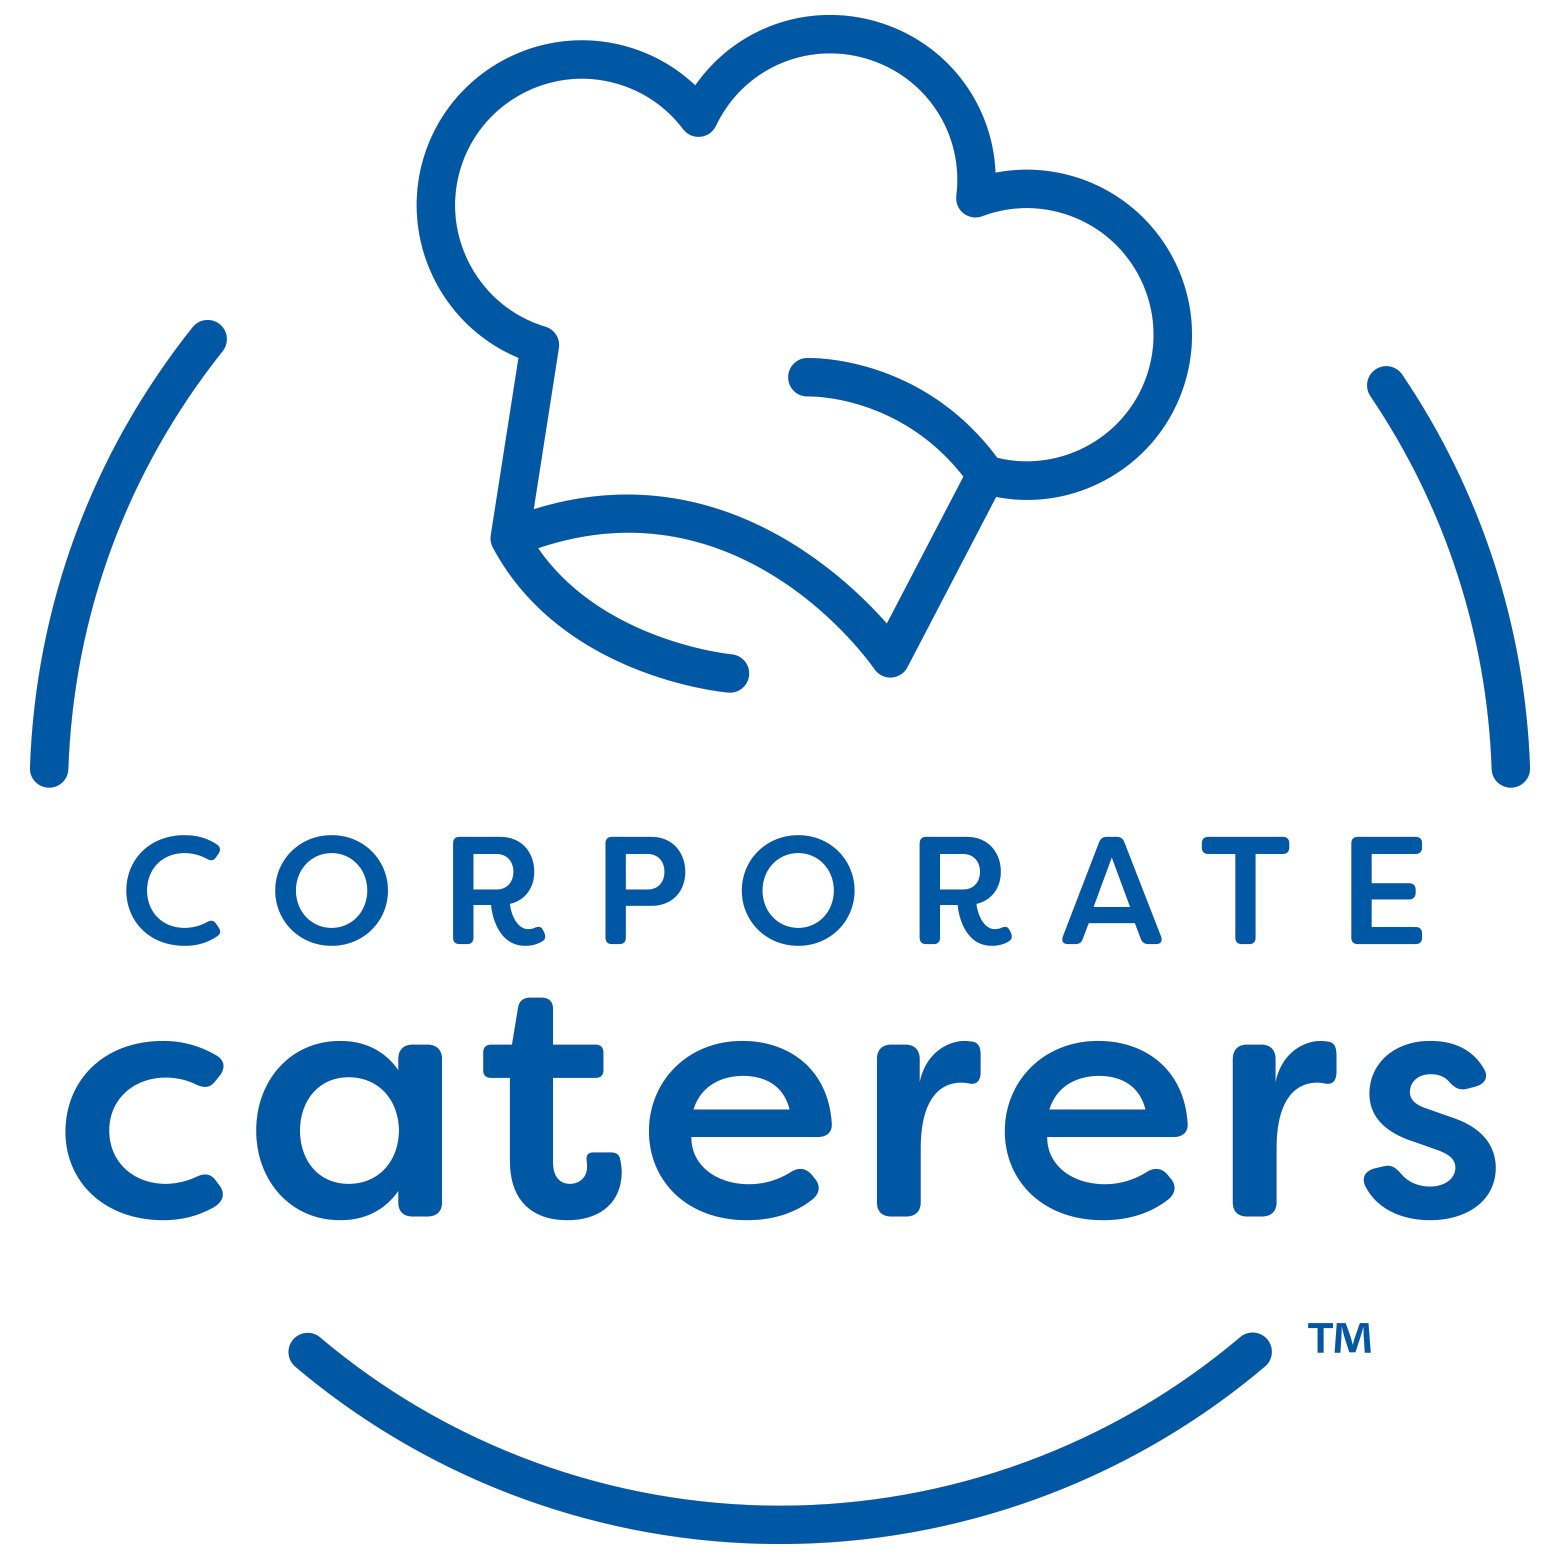 Corporate Caterers